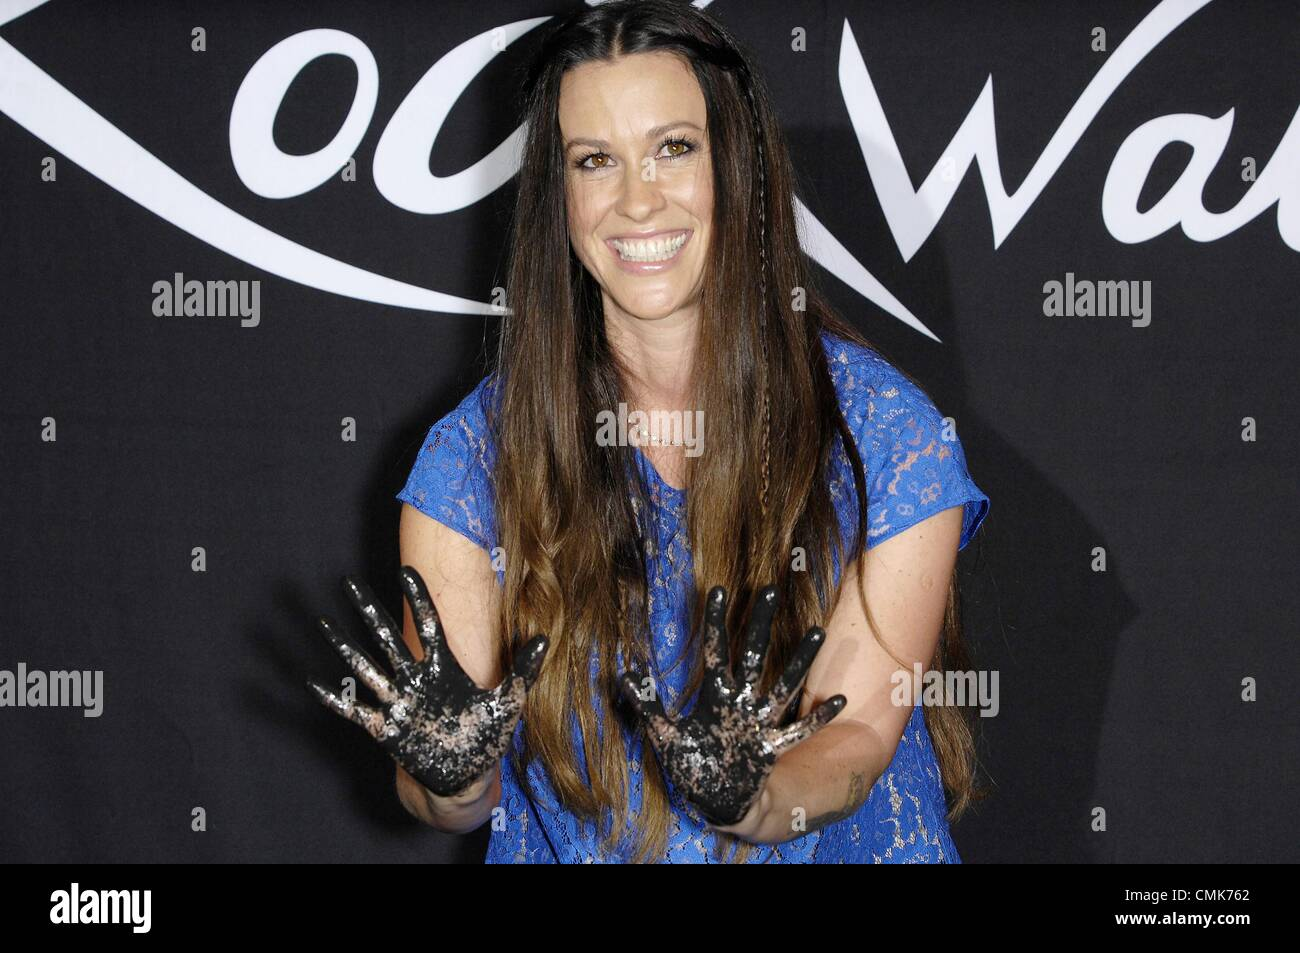 To acquire 21 with questions alanis morissette pictures trends